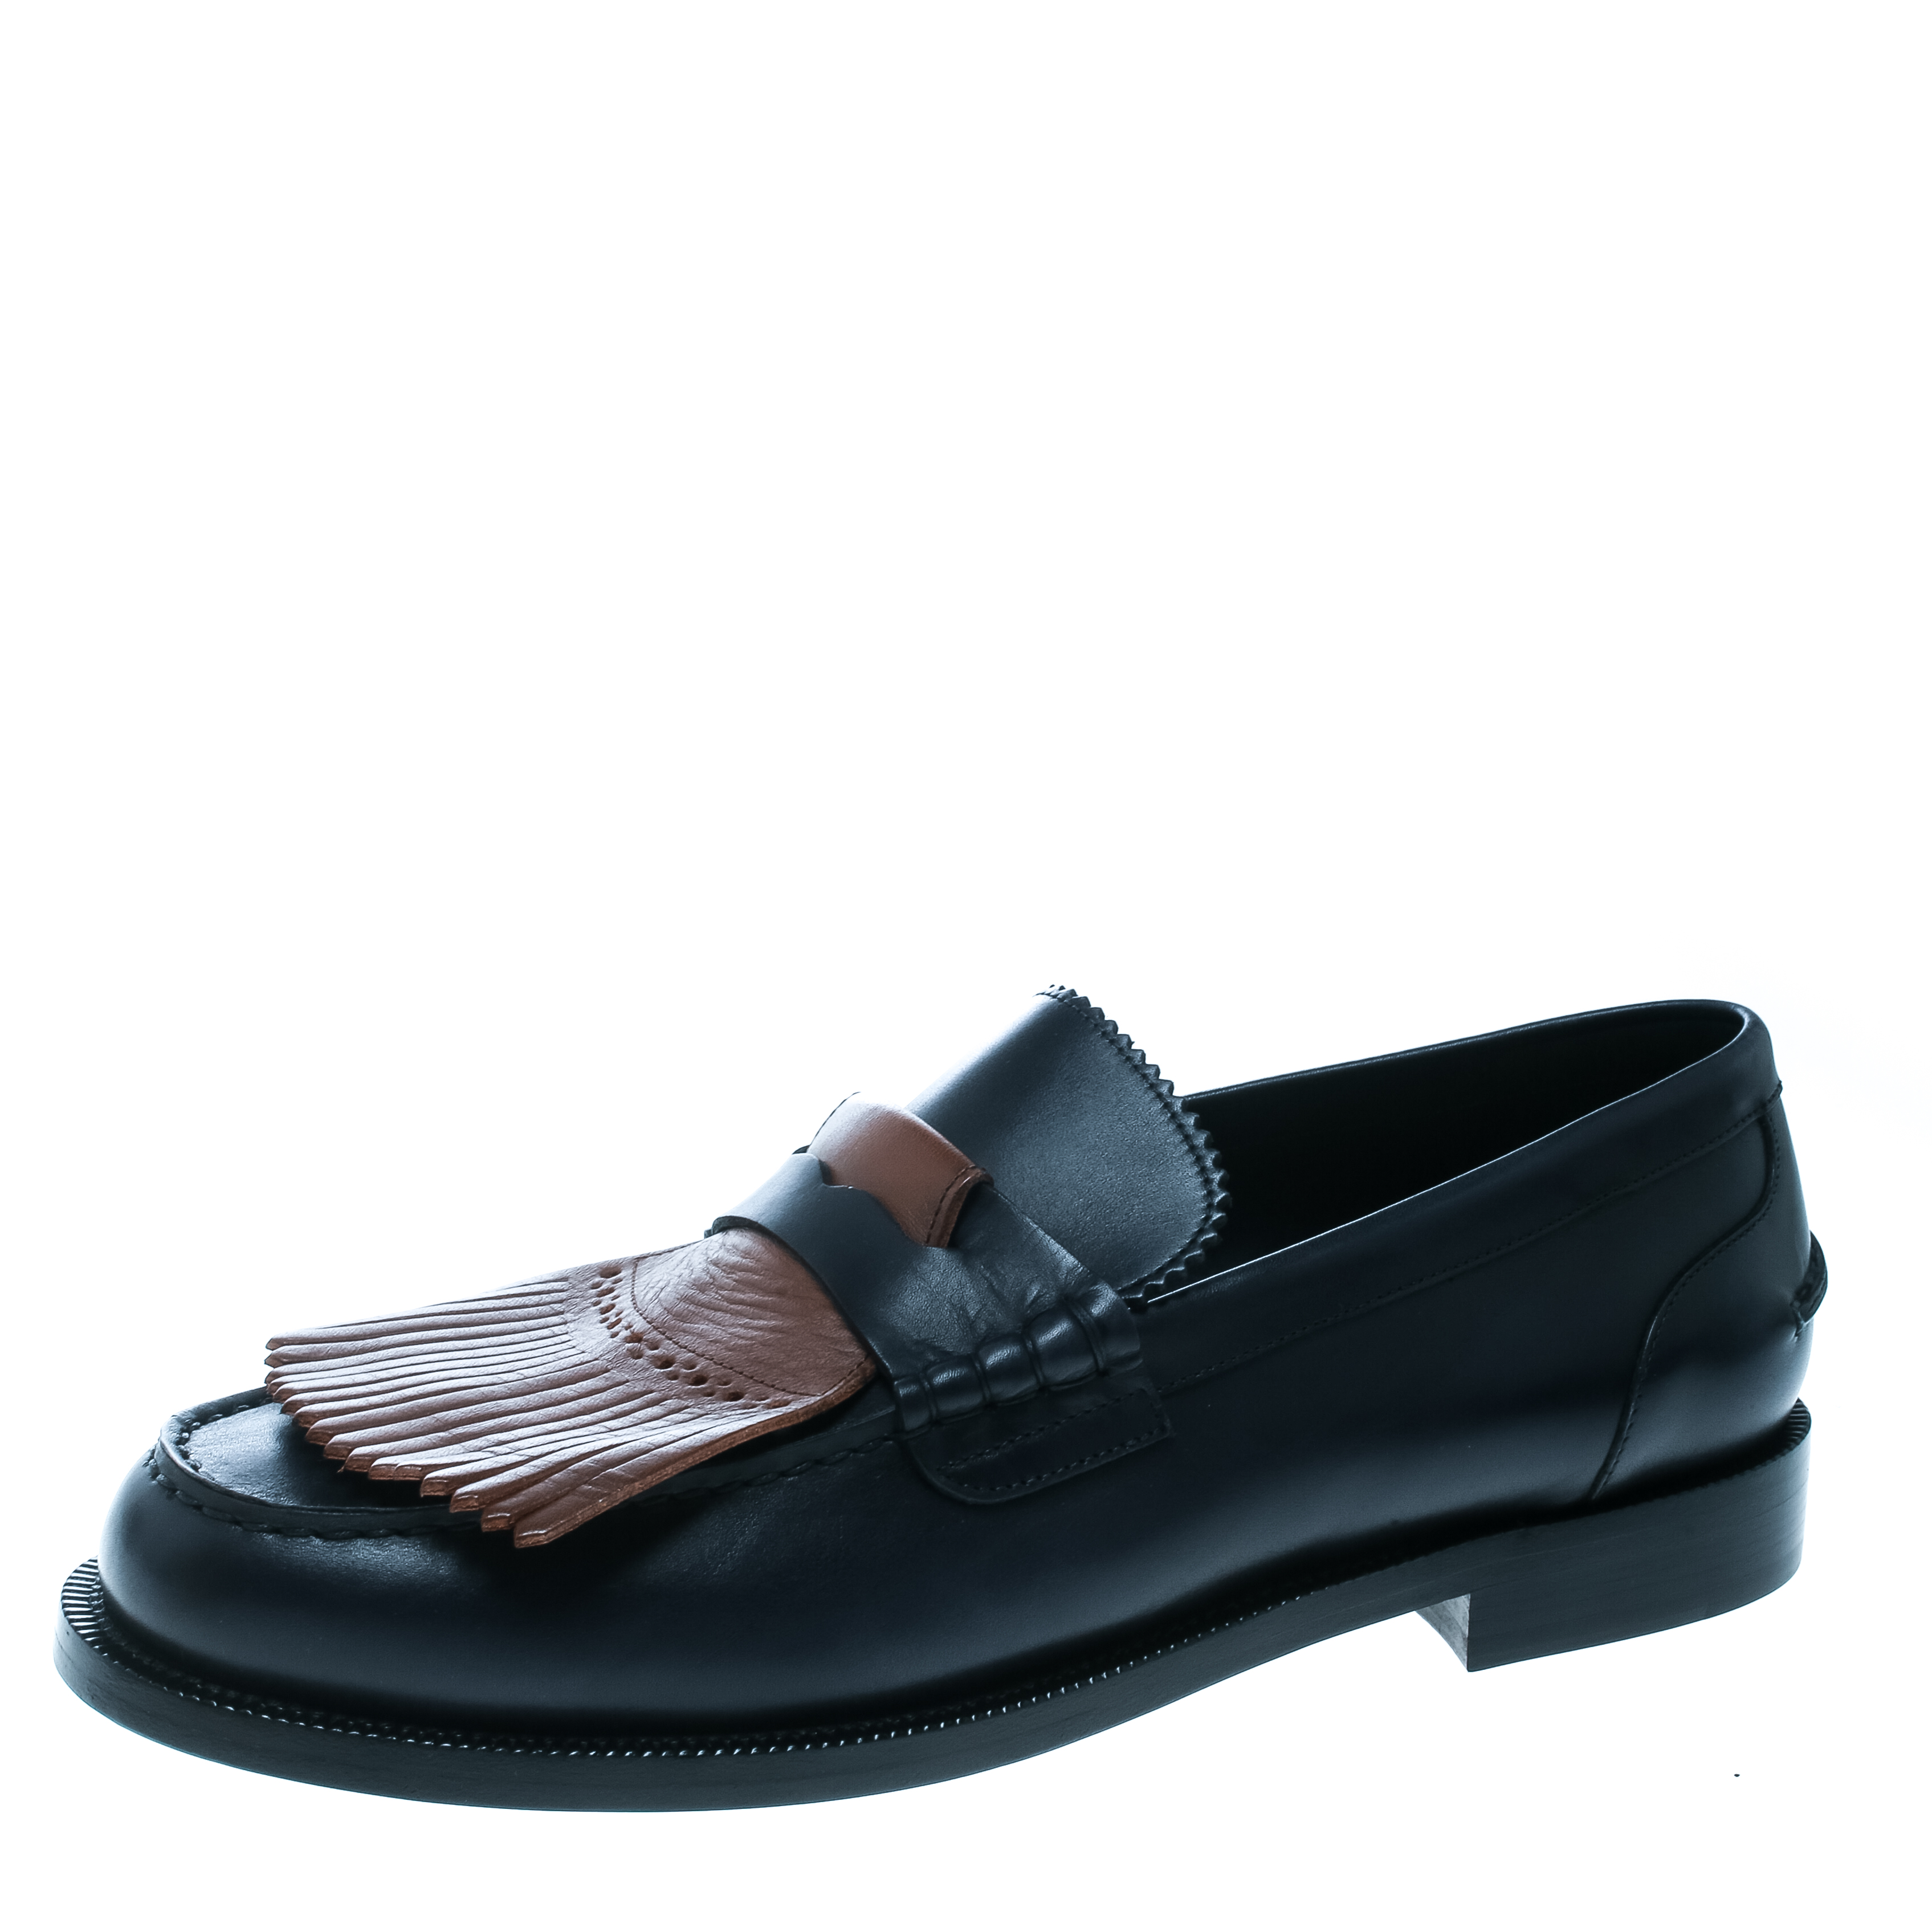 0a62b64ed5c22 ... Burberry Dark Blue Leather Bedmoore Fringe Detail Penny Loafers Size  44. nextprev. prevnext